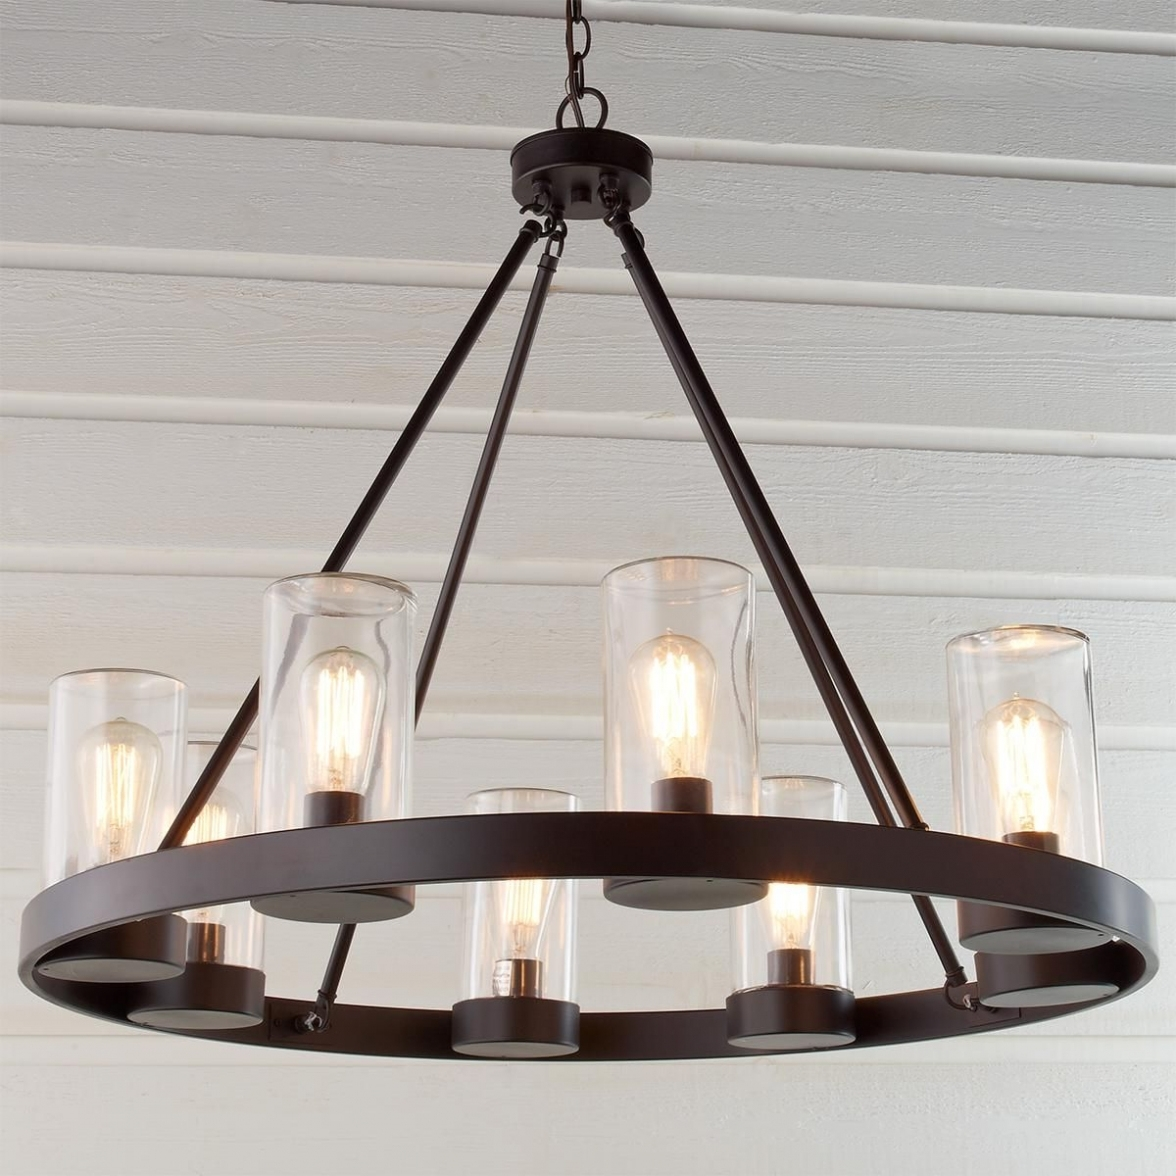 Newest Lighting: Kichler Lighting Barrington 5 Light Distressed Black And For Outdoor Chandelier Kichler Lighting (View 15 of 20)